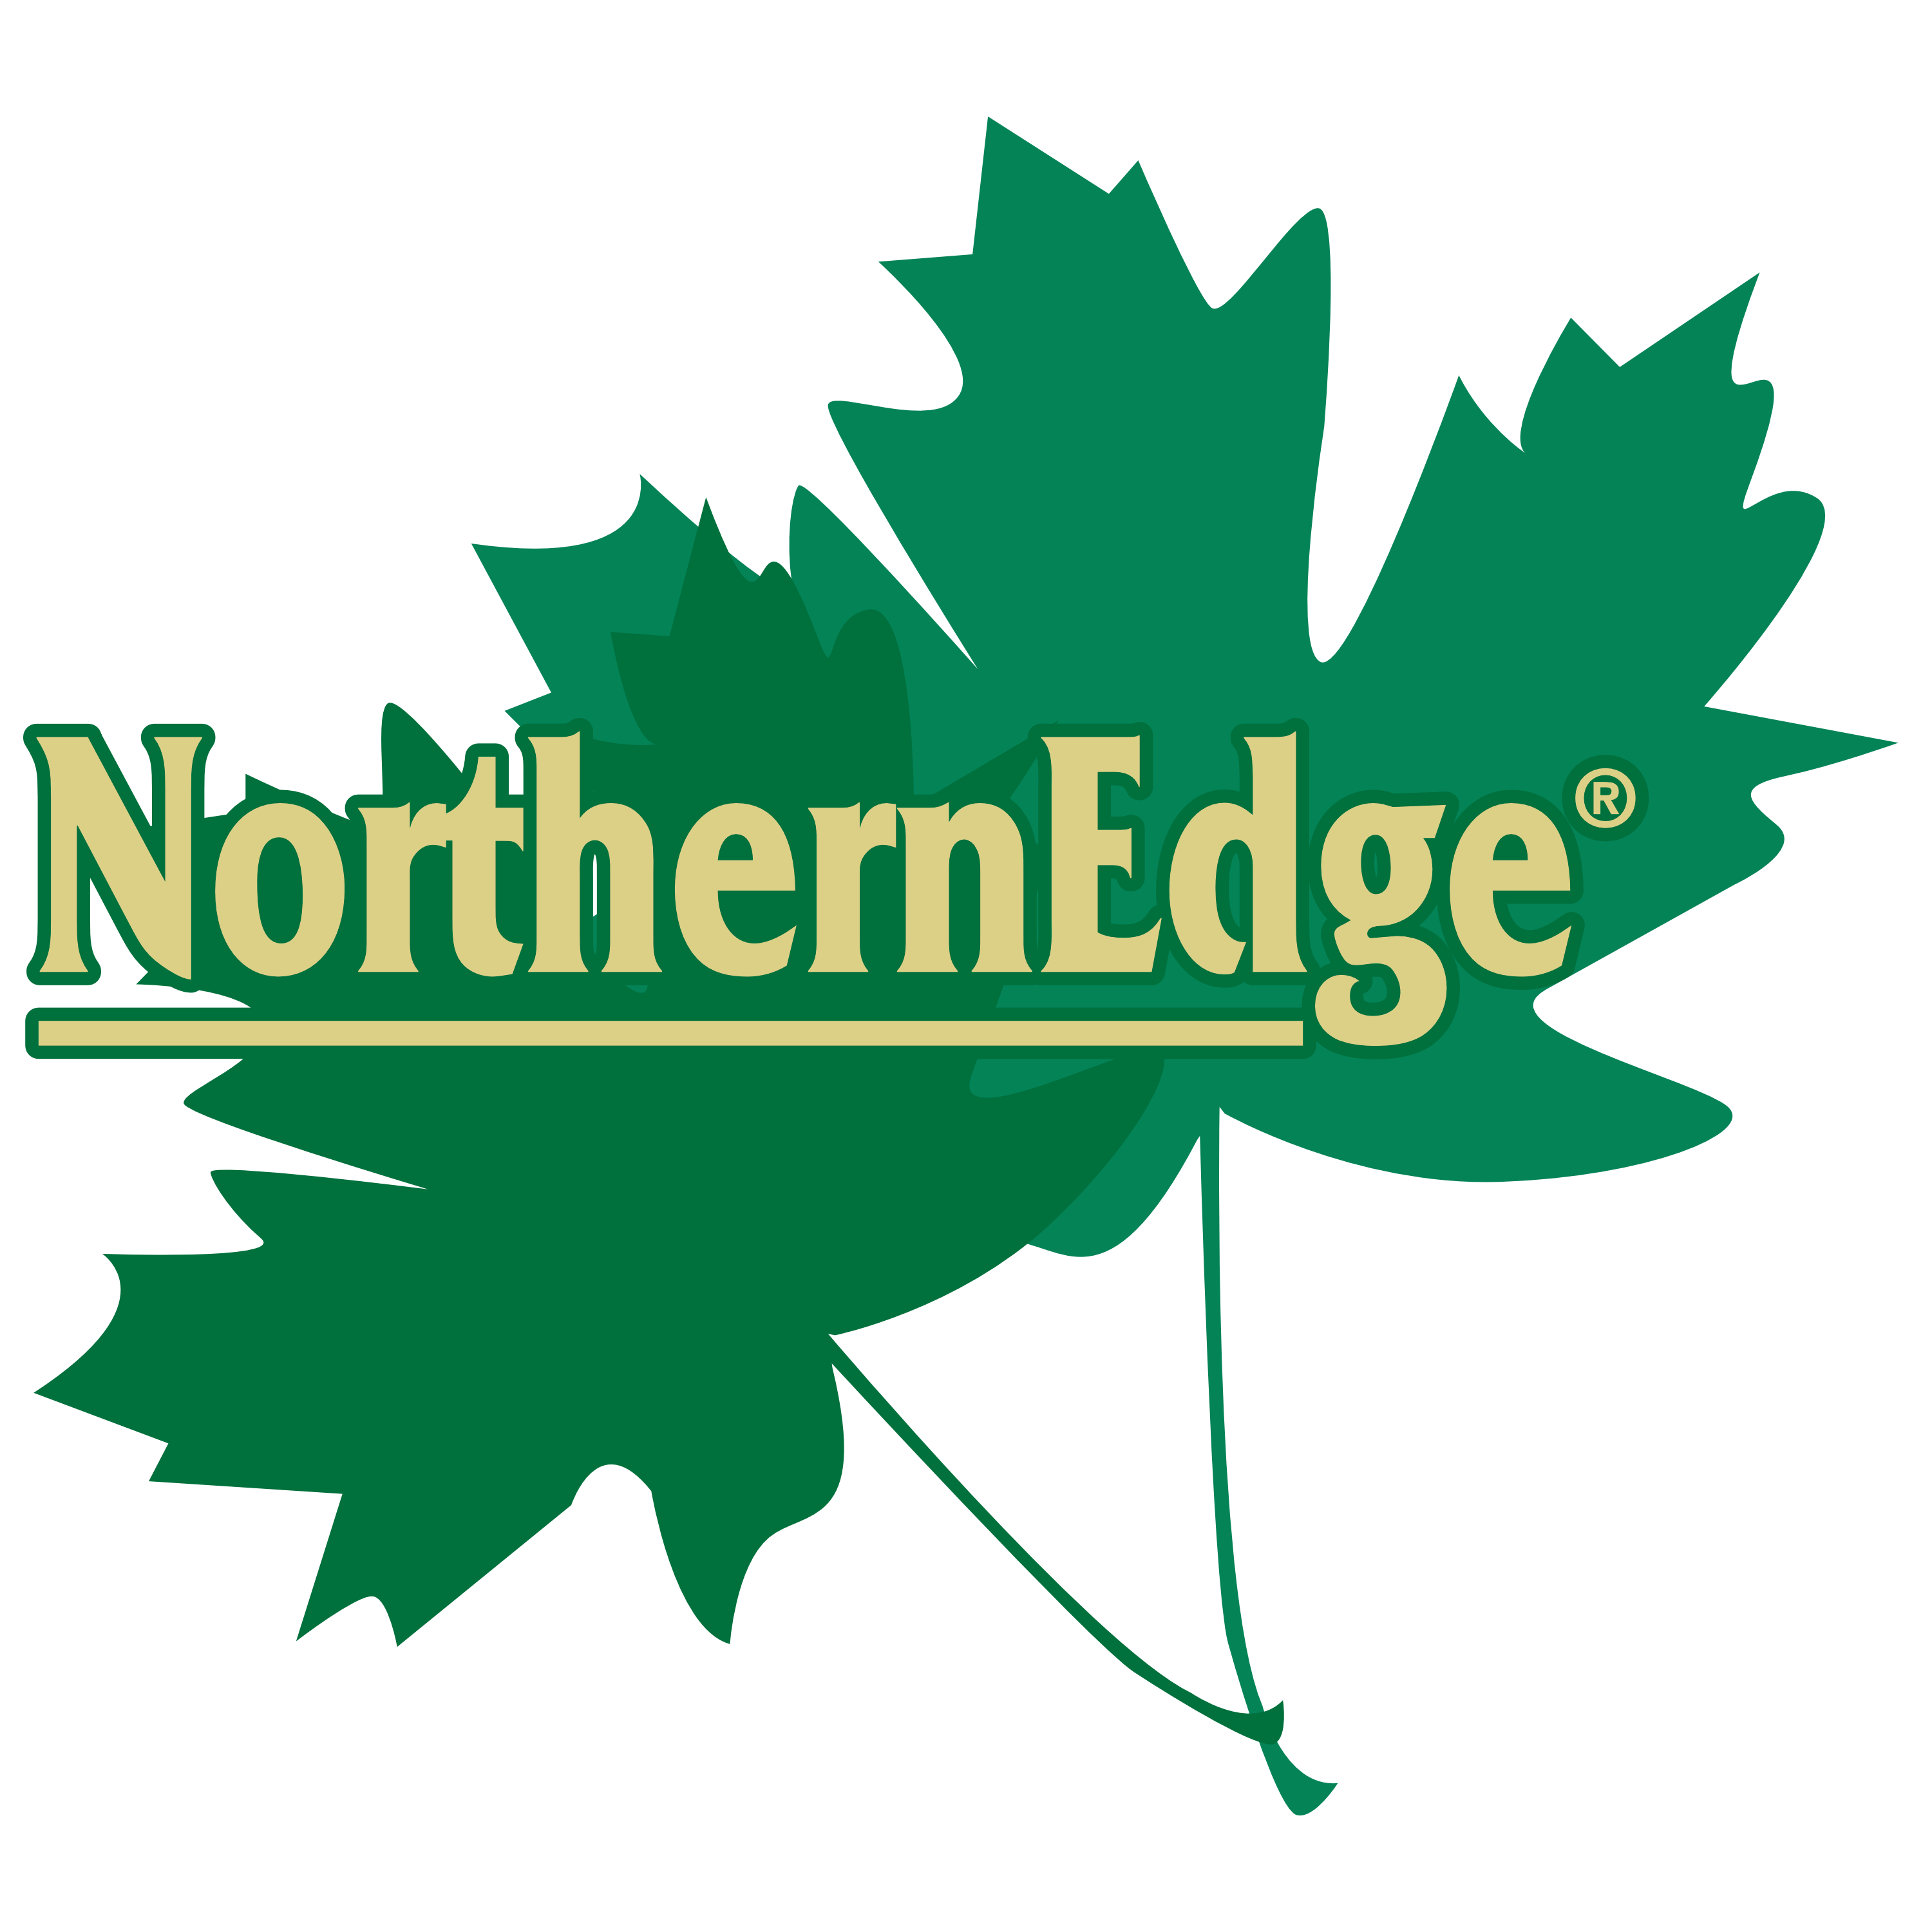 NorthernEdge® Organic & Conventional Hemp Oil and Flaxseed Oil is processed & packaged by Northern Nutraceuticals Inc. in a HACCP and Kosher accredited facility, located at 420 Fourth Ave in Spalding, SK. check out www.northernnutra.ca for more info! Northern Nutraceuticals Inc. use only Canadian grown oilseed, which includes Canadian Flaxseed, Canadian Hempseed, and Canadian Borage seed, and is processed into cold pressed oils or milled.